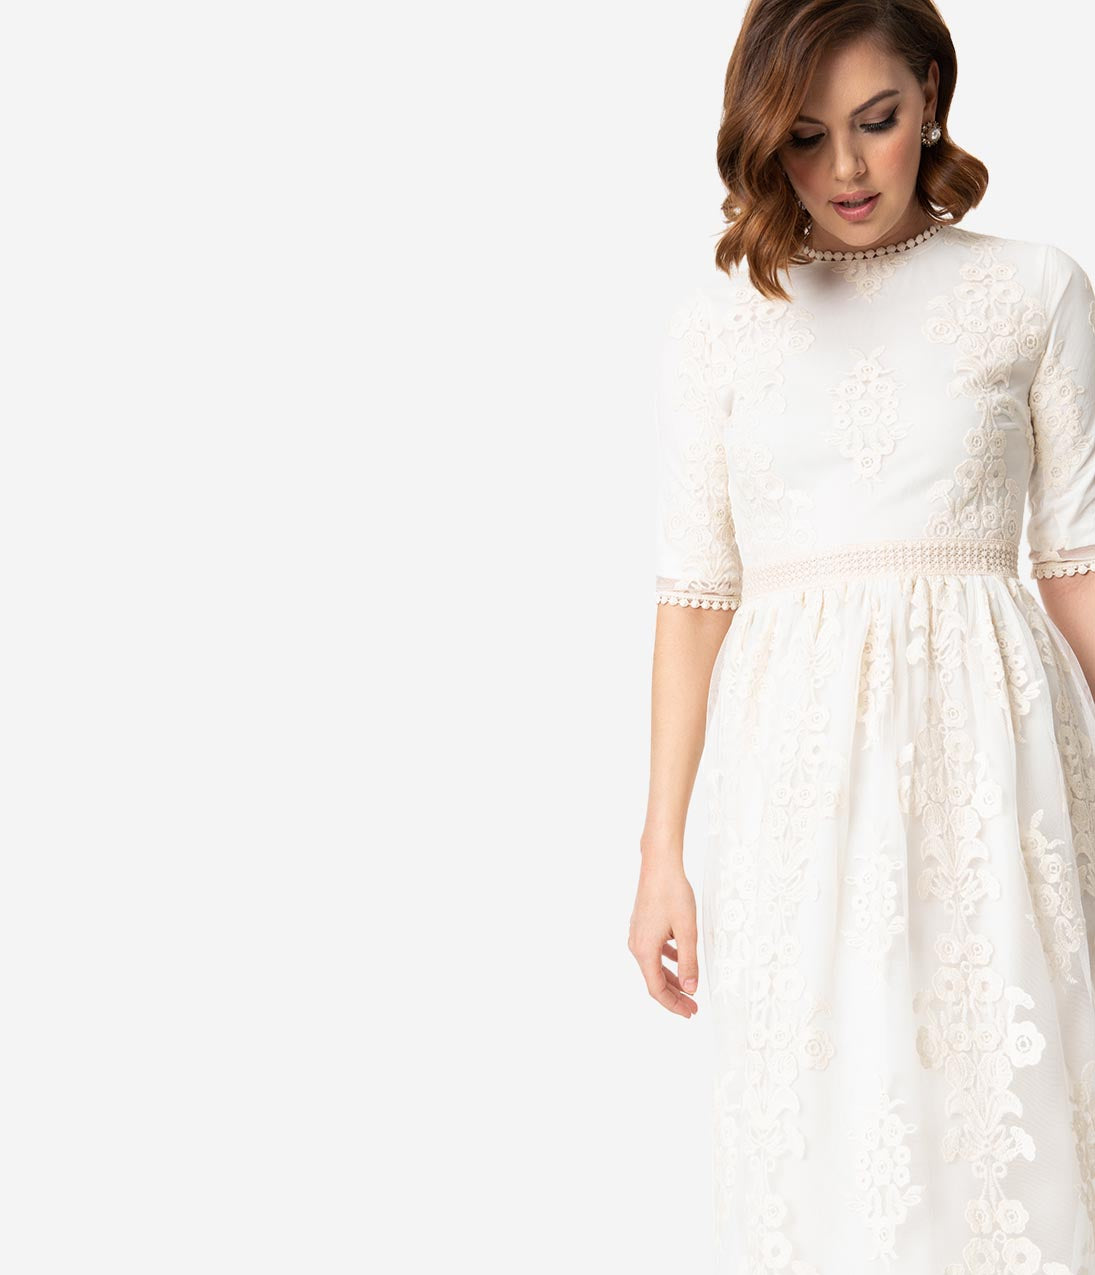 Old Fashioned Dresses | Old Dress Styles Vintage Style Antique Ivory Embroidered Lace Modest Midi Dress $58.00 AT vintagedancer.com